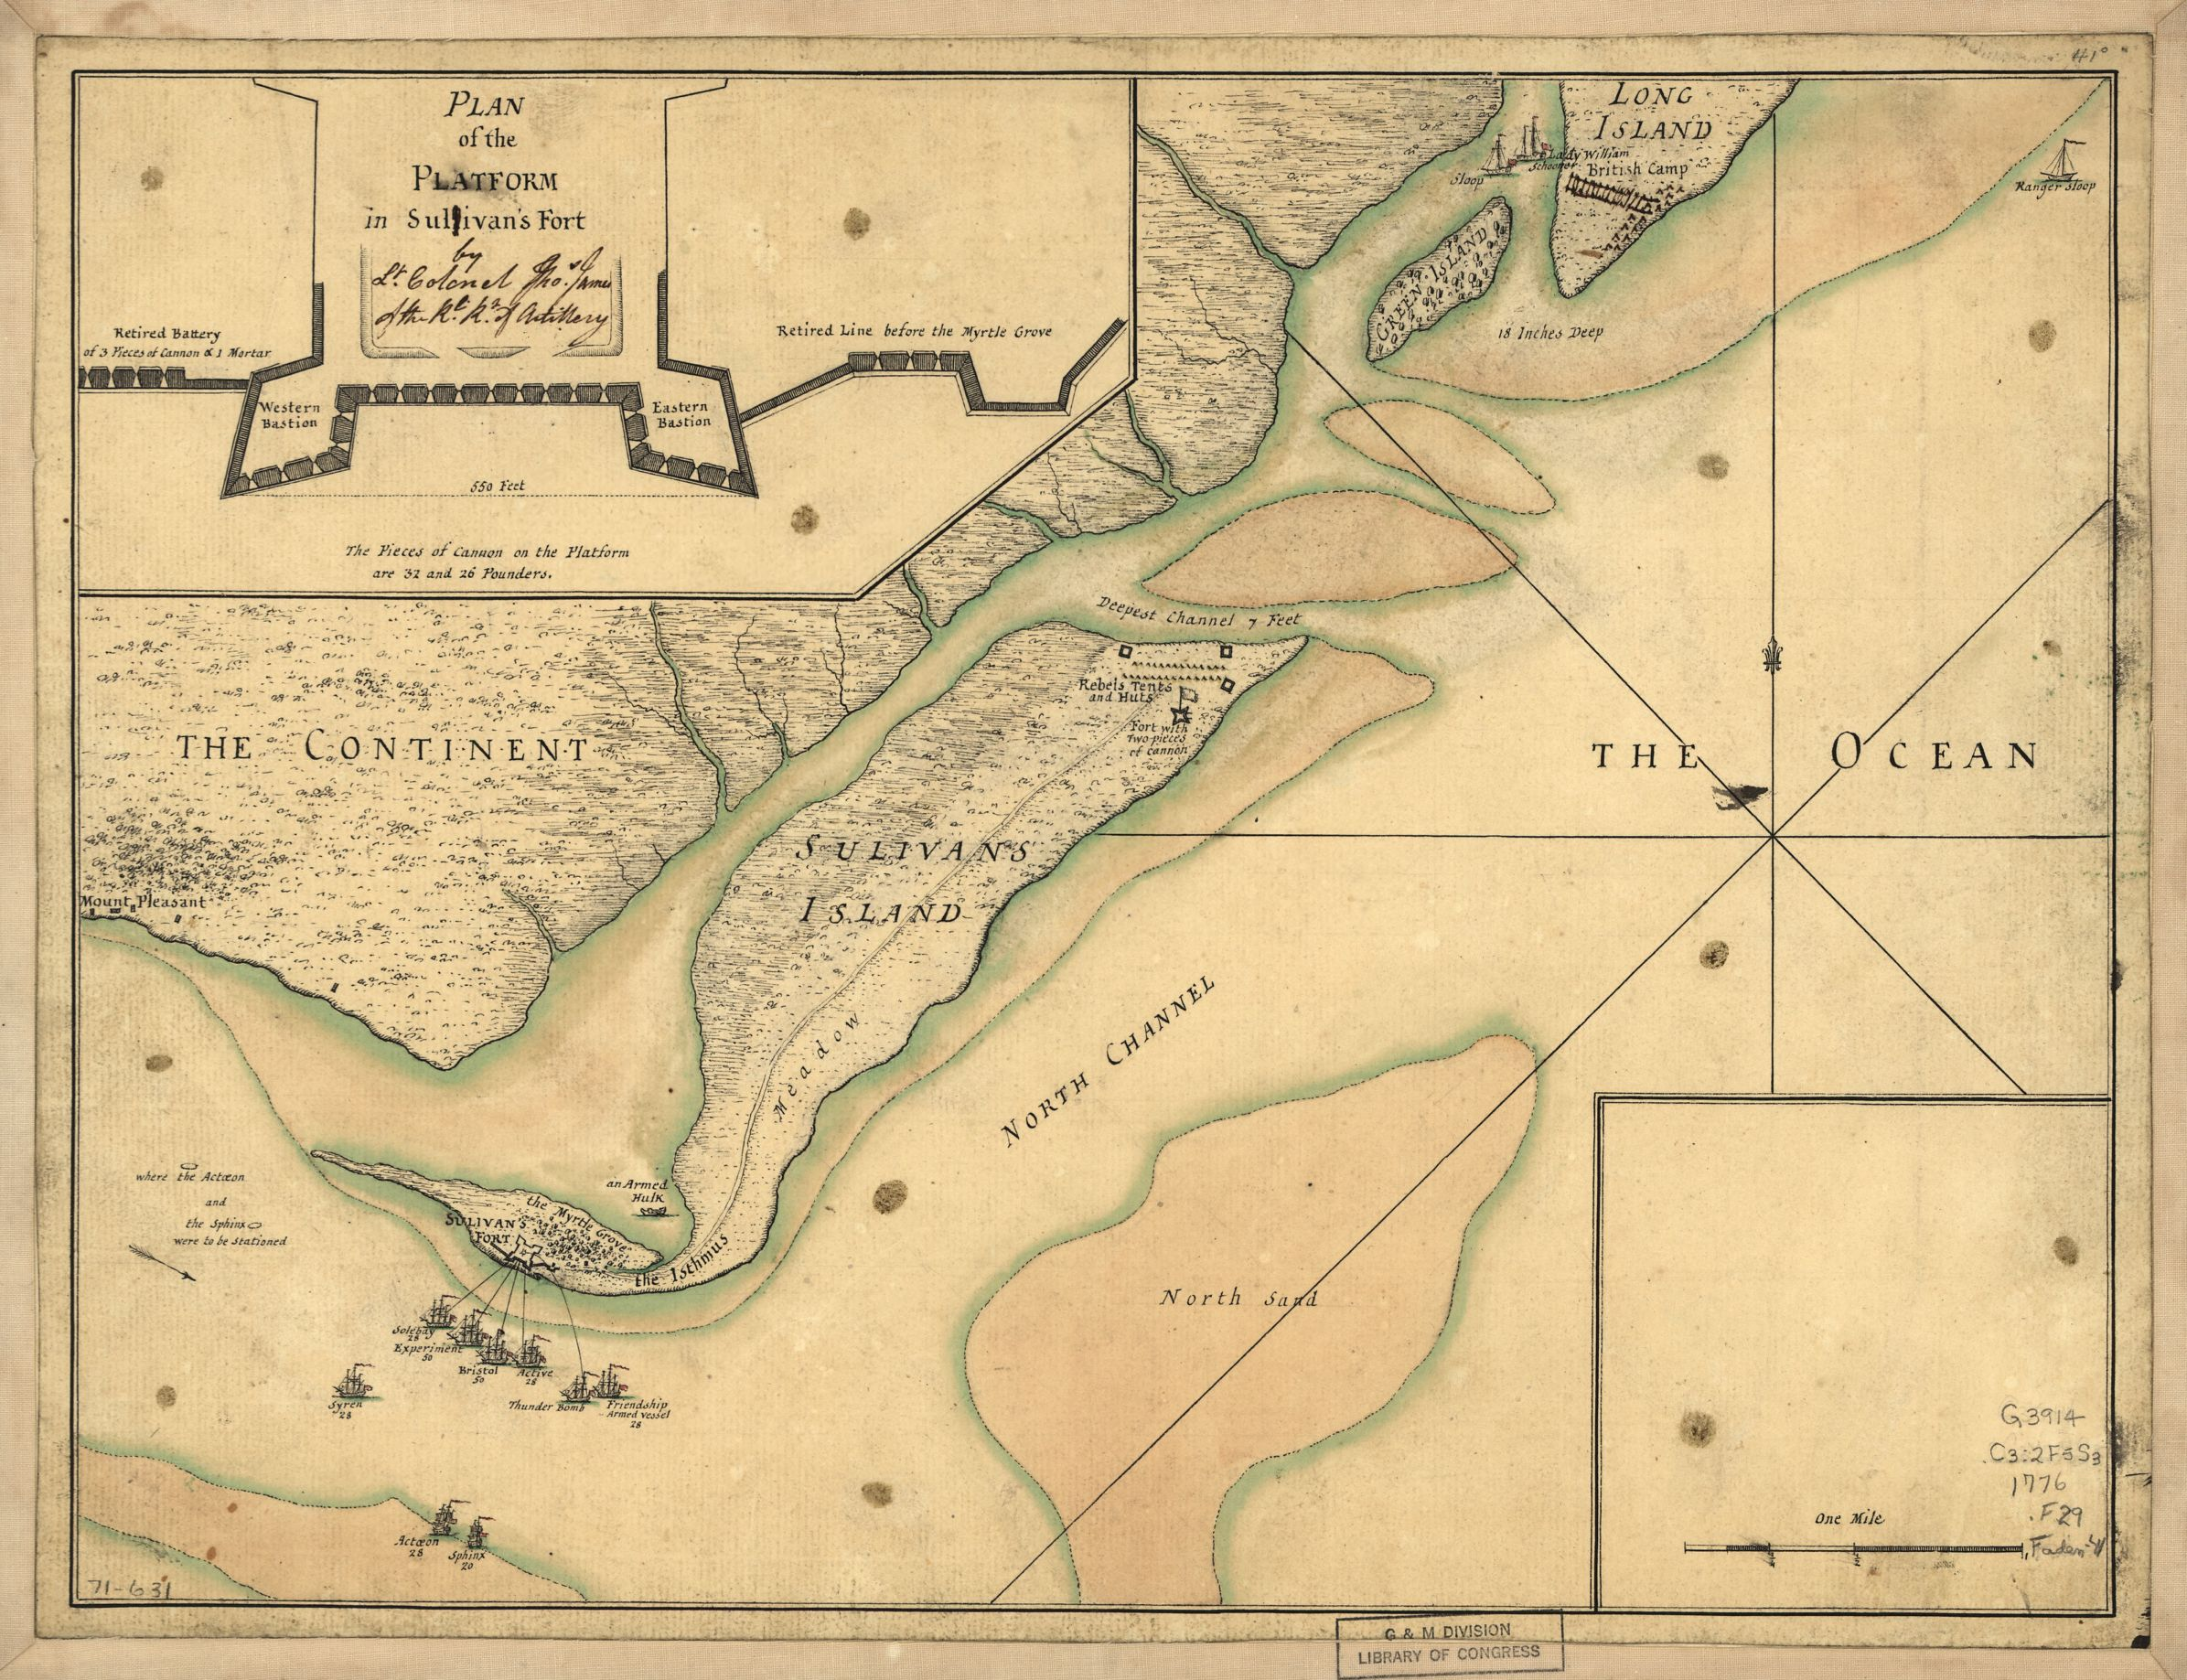 A plan of the attack of Fort Sulivan, near Charles Town in South Carolina by a squadron of His Majesty's ships on the 28th day of June 1776, with the disposition of the King's land forces and the encampments and entrenchments of the rebels, from the drawings made on the spot., by William Faden and Thomas James, c. 1776.  Courtesy, Library of Congress [G3914.C3:2F5S3 1776 .F29]